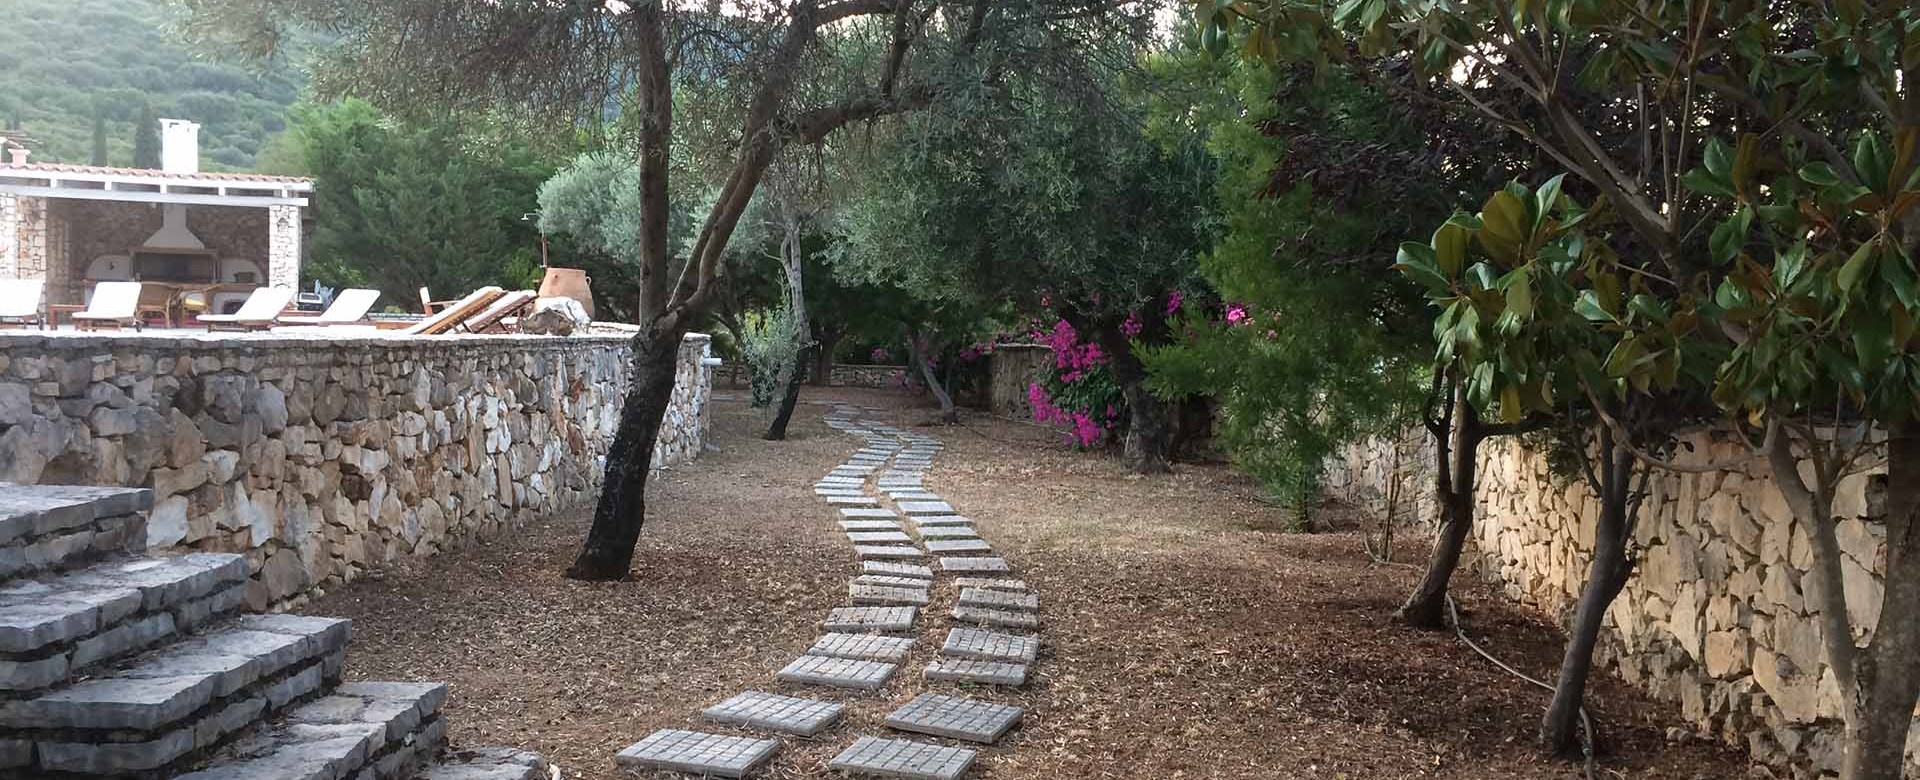 Stroll through the gardens of Melissani Apartments, Karavomilos, Kefalonia, Greek Islands